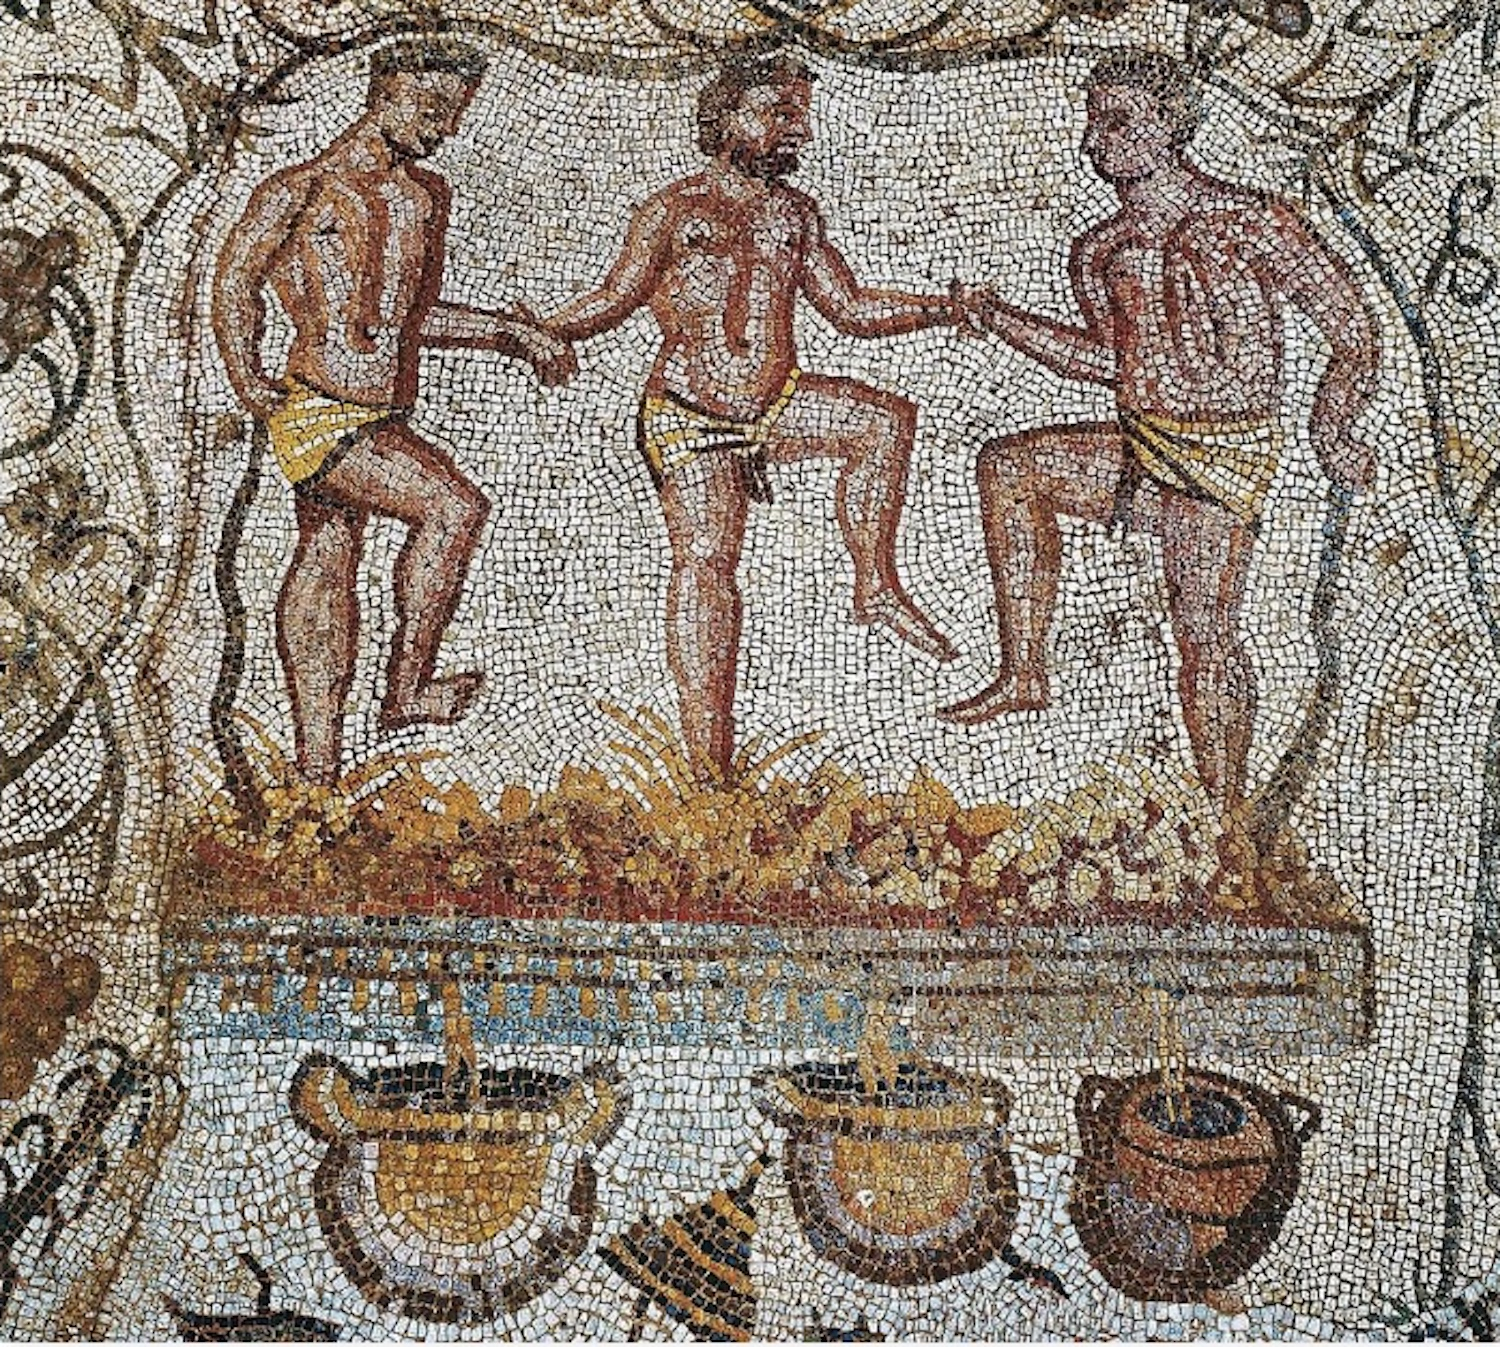 Three men tread grapes. This 2nd century AD mosaic is from the Amphitheatre House, Merida, Spain. It illustrates a part of the job of wine-making.Image from  here  (accessed 8/29/2018).